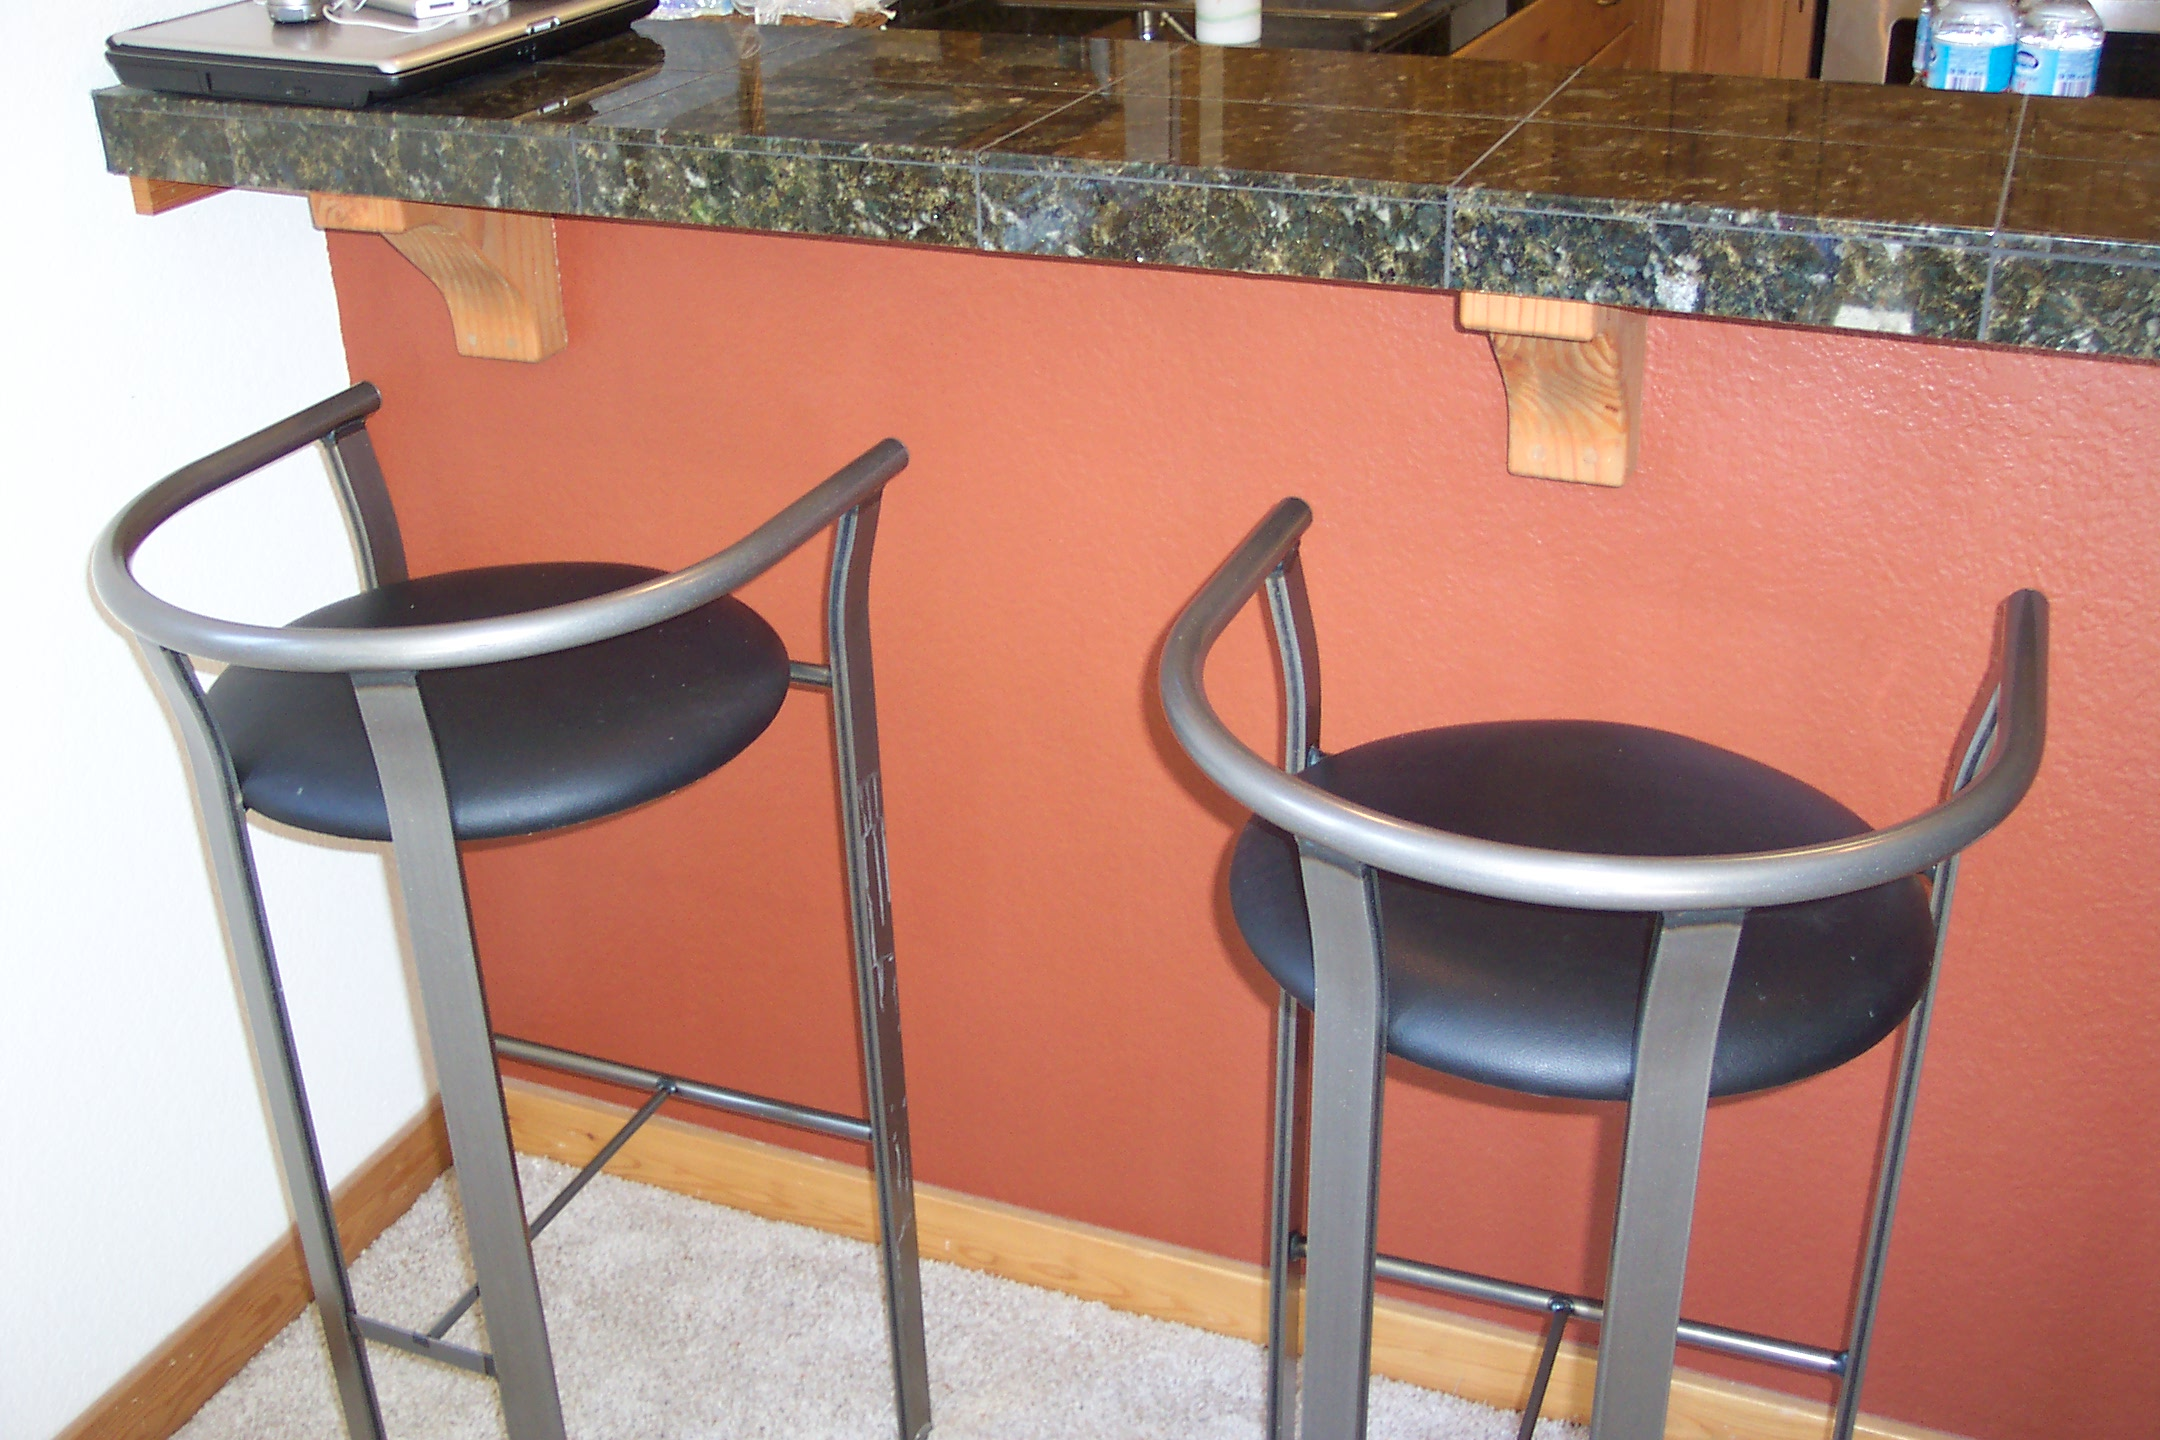 Kitchen Bar Stools Perth Wa